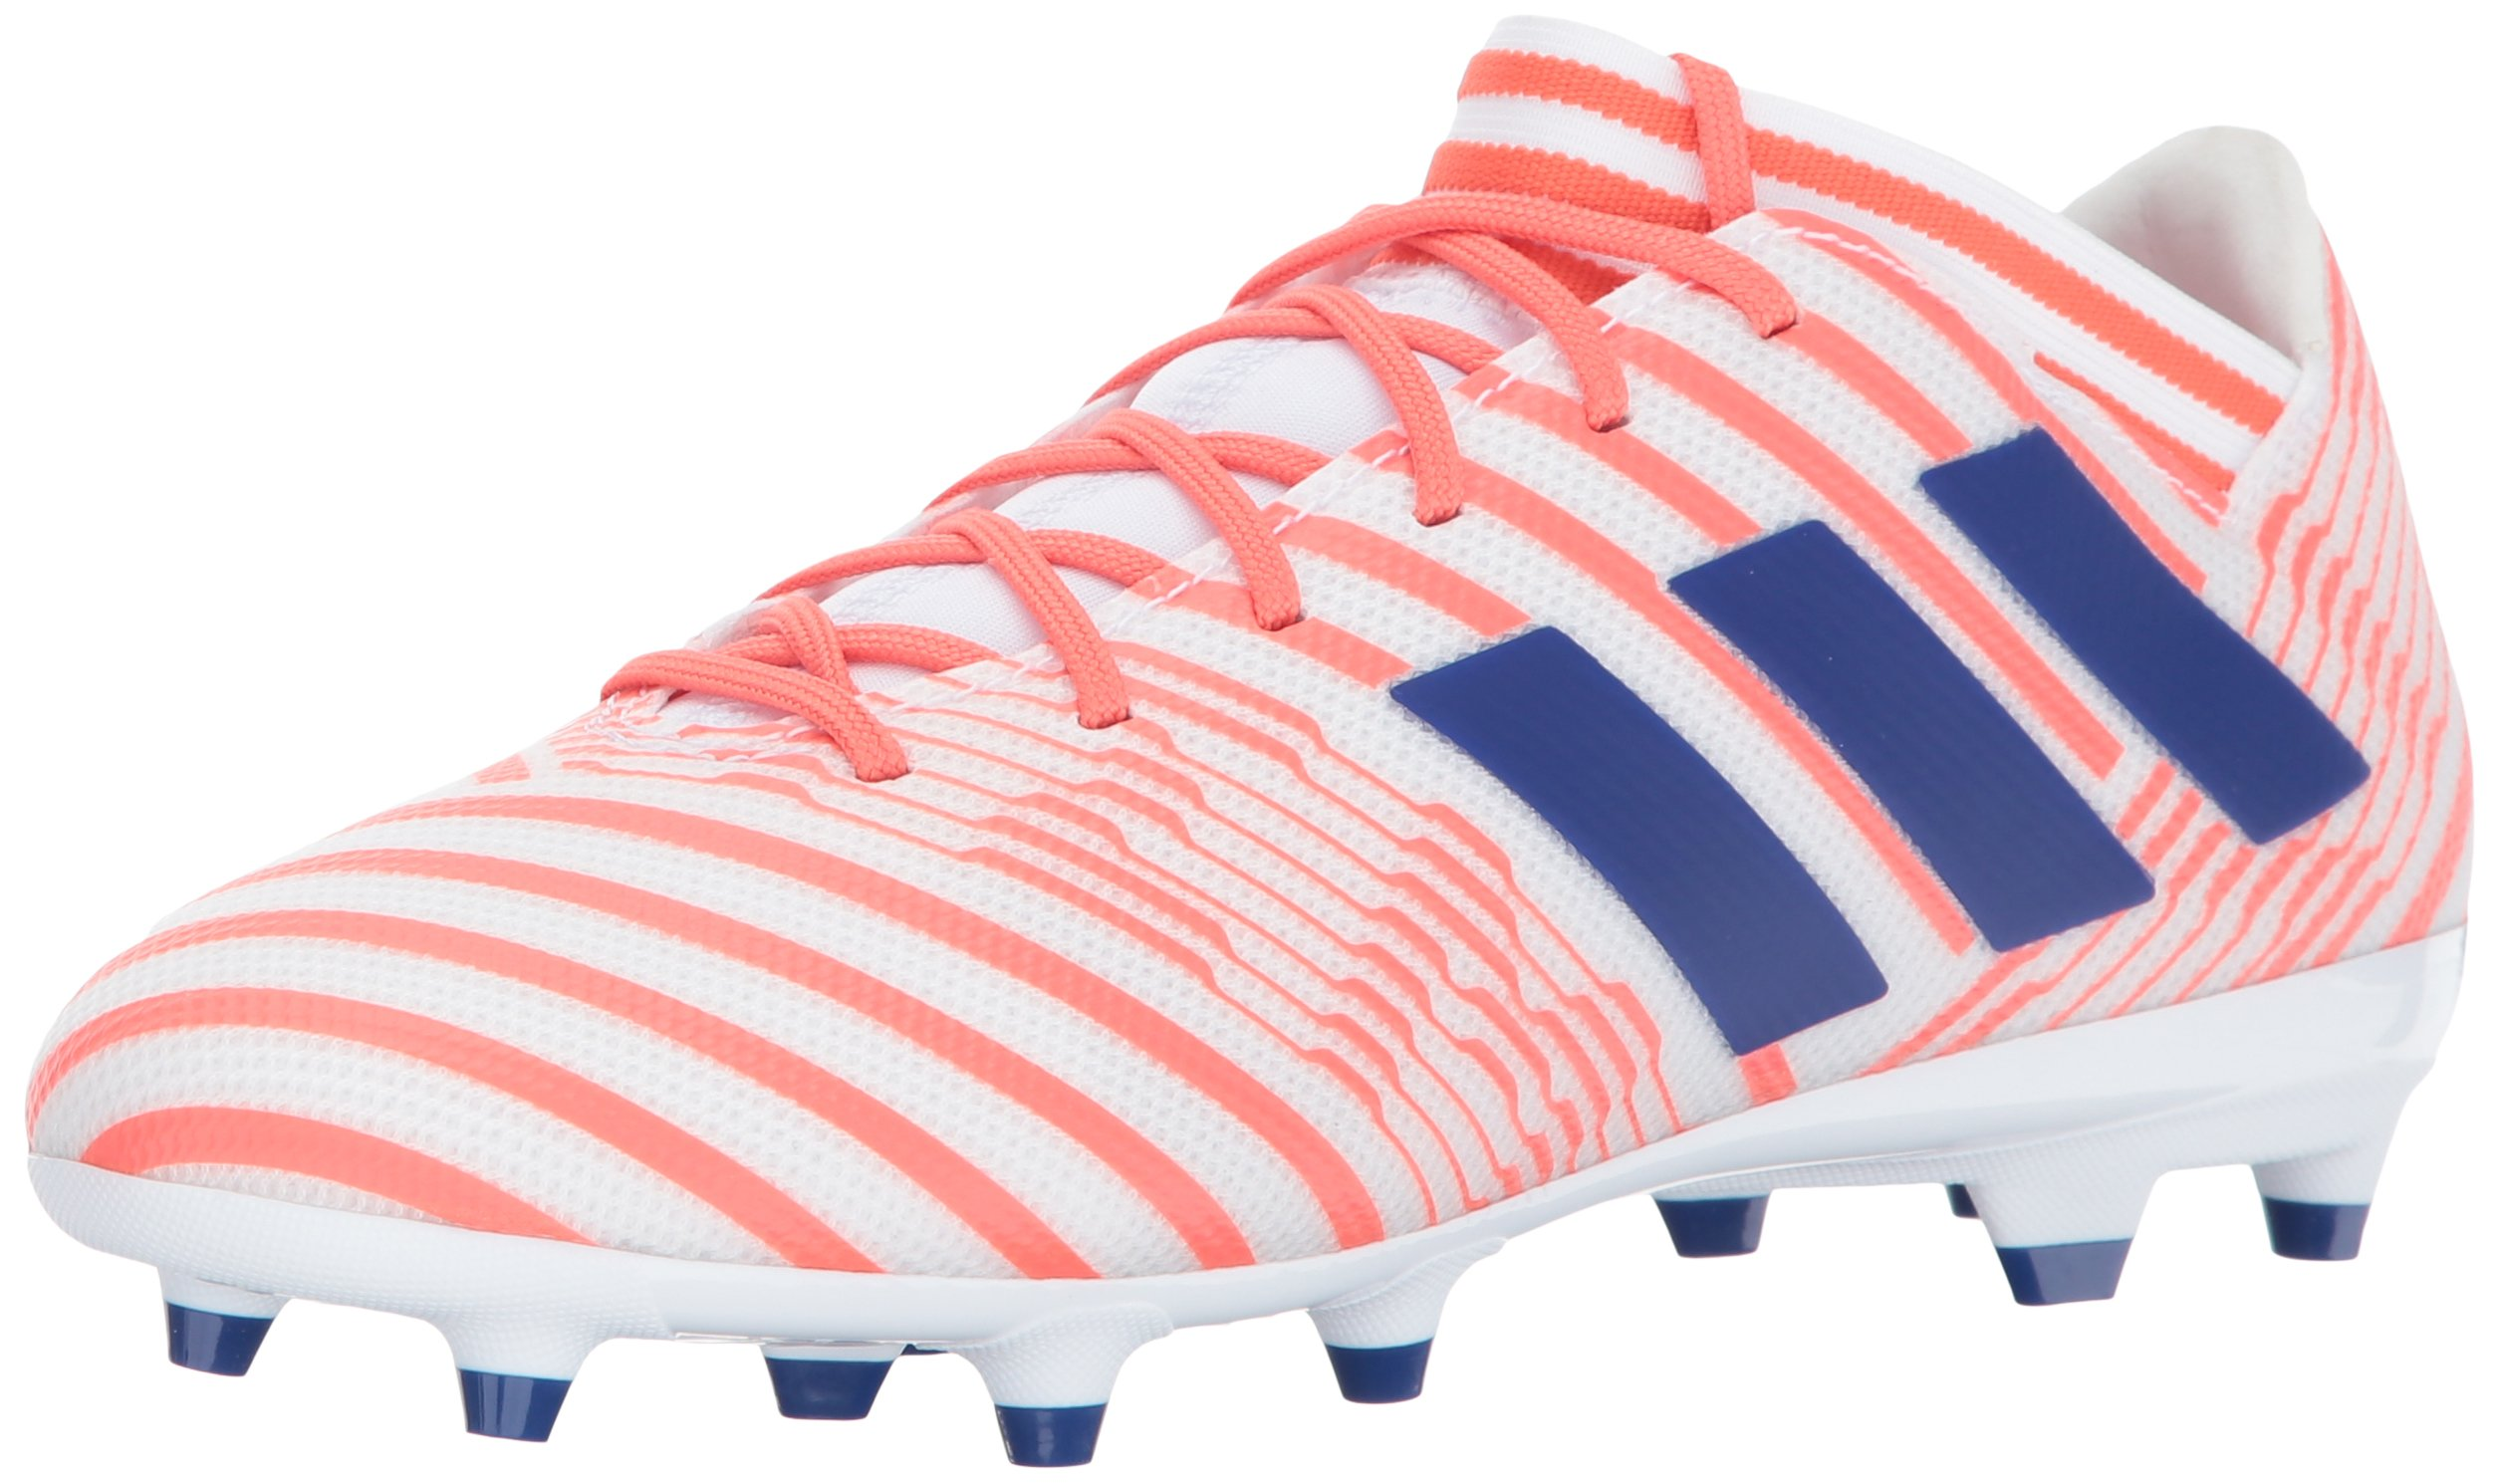 adidas Women's Nemeziz 17.3 FG W Soccer Shoe, White/Mystery Ink/Easy Coral, 7 Medium US